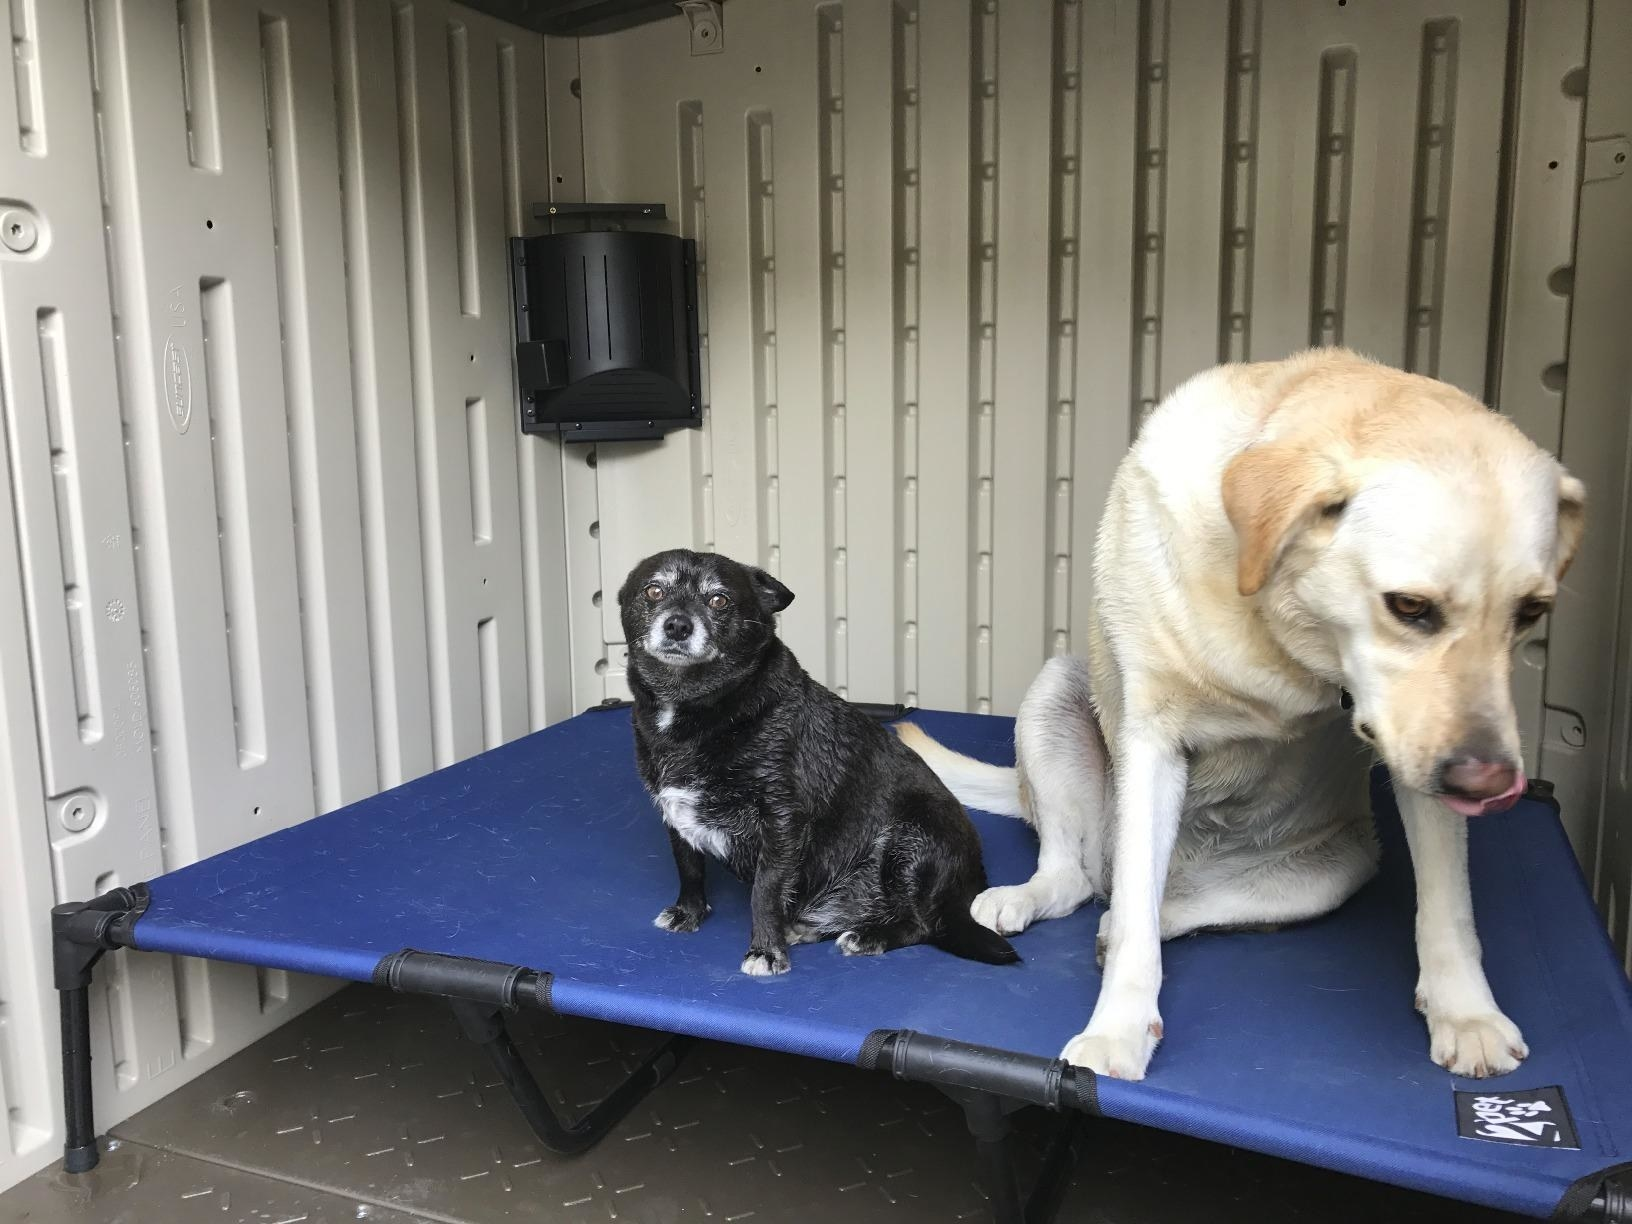 Reviewer photo of two dogs next to dog house heater